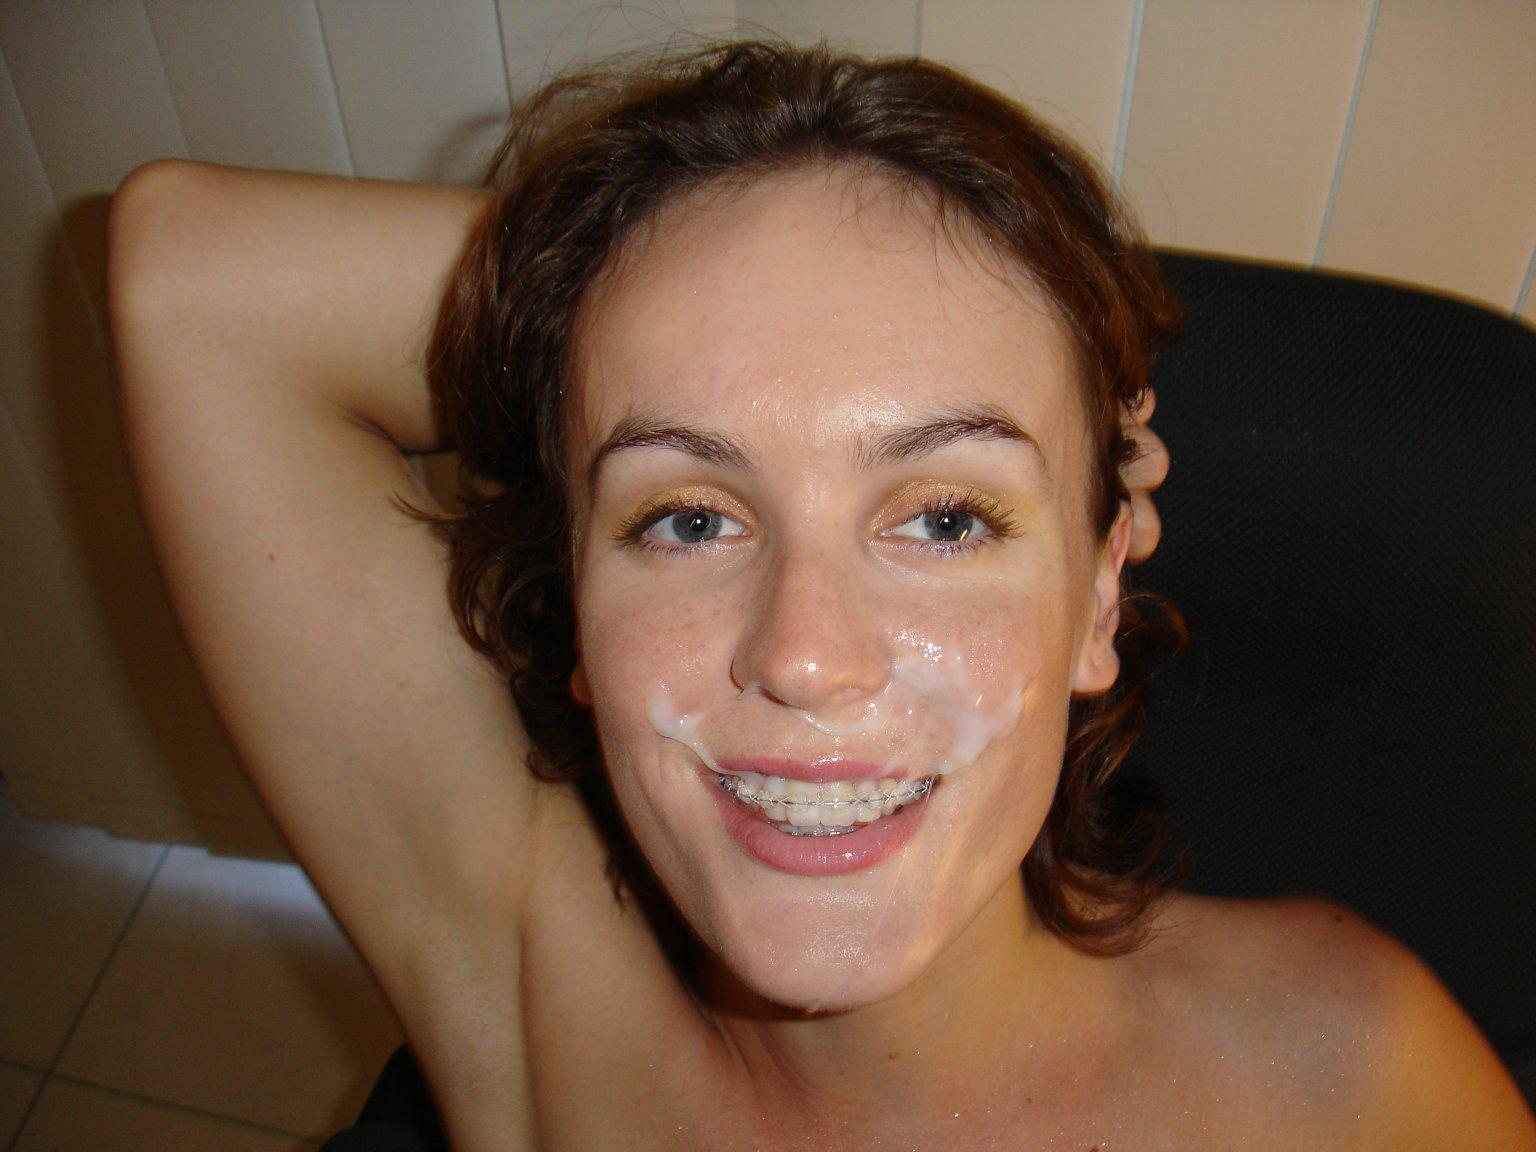 Homemade Blowjob Before And After - Homemade student revenge blowjob - Porn Pics & Movies